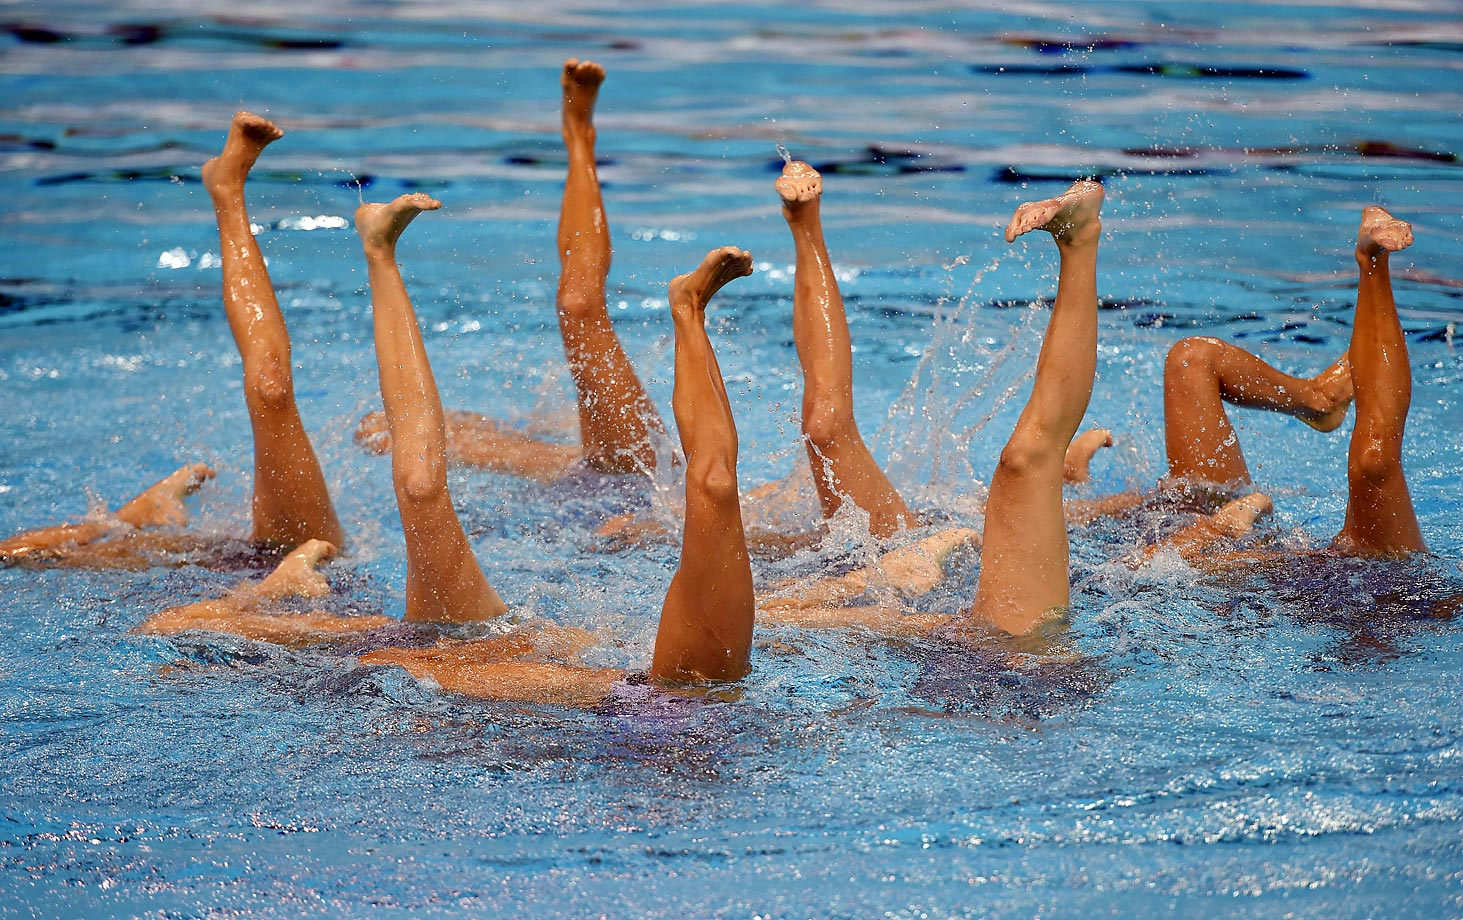 Mexico performs the Synchronized Swimming Team Technical Routine at the Toronto 2015 Pan American Games.